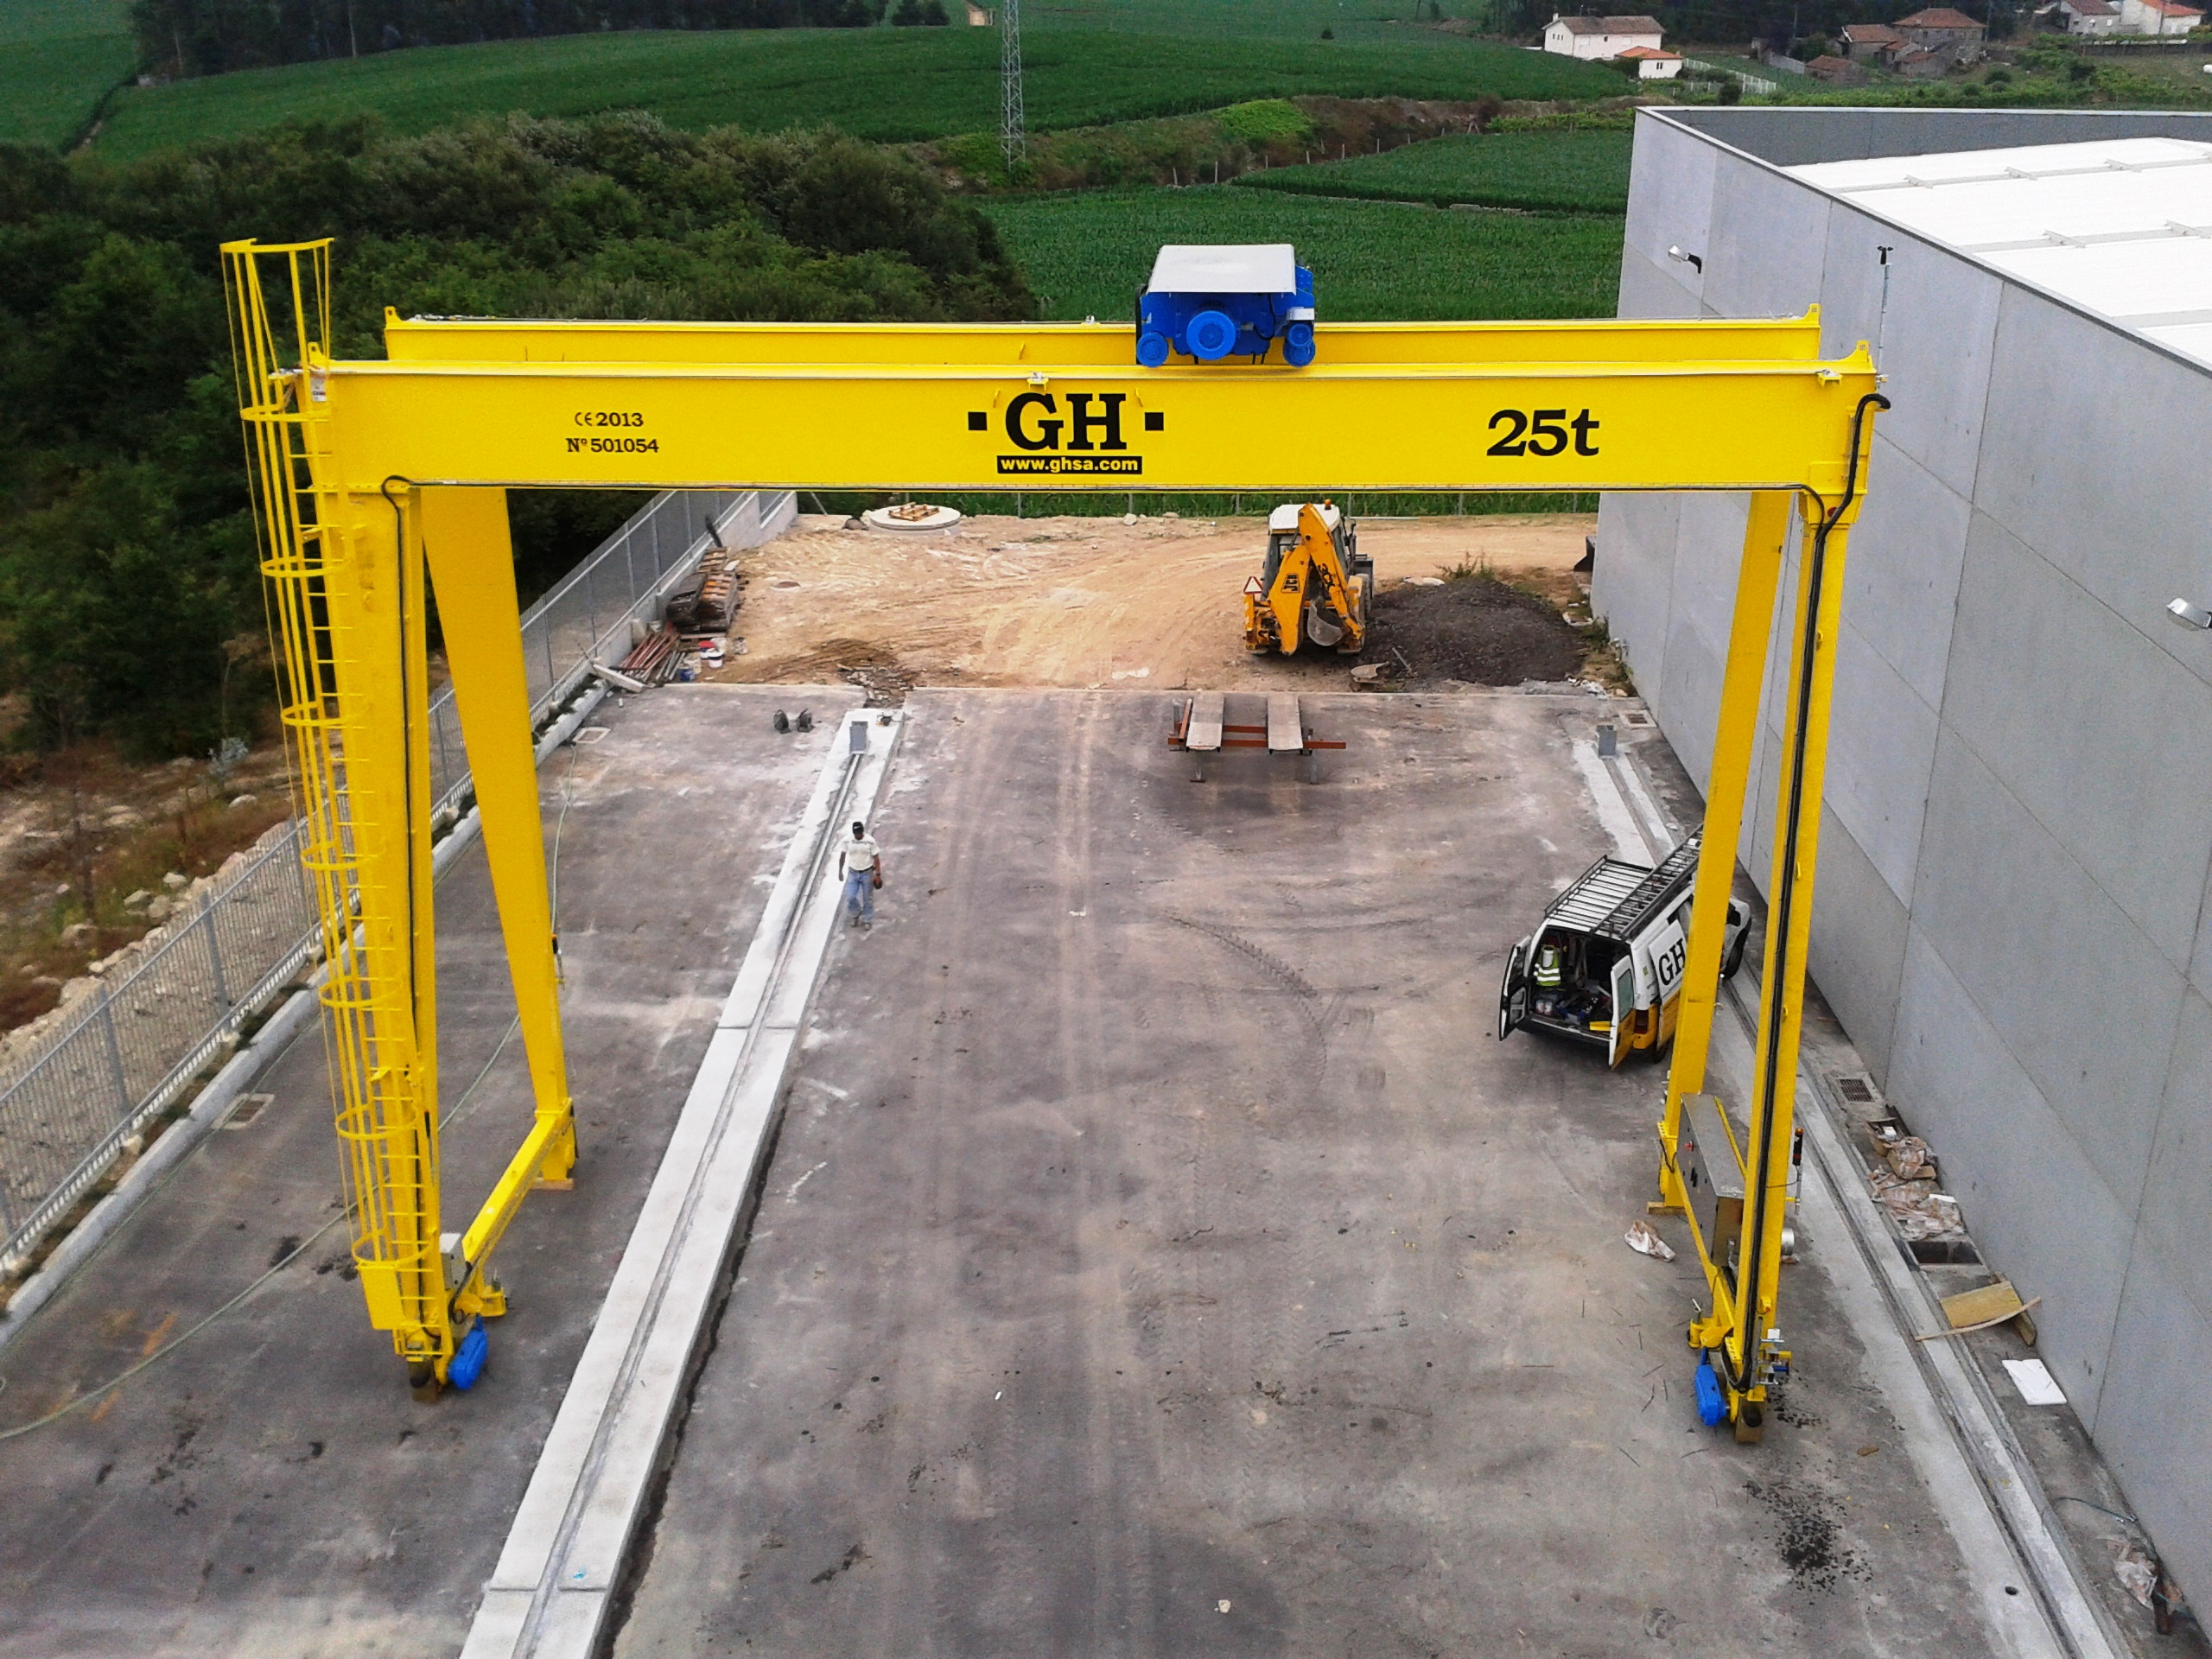 <br>Portal crane with hoist of 10 t lifting capacity for customer Pradecon - Construções metalicas Lda in Vila do Conde (Portugal)